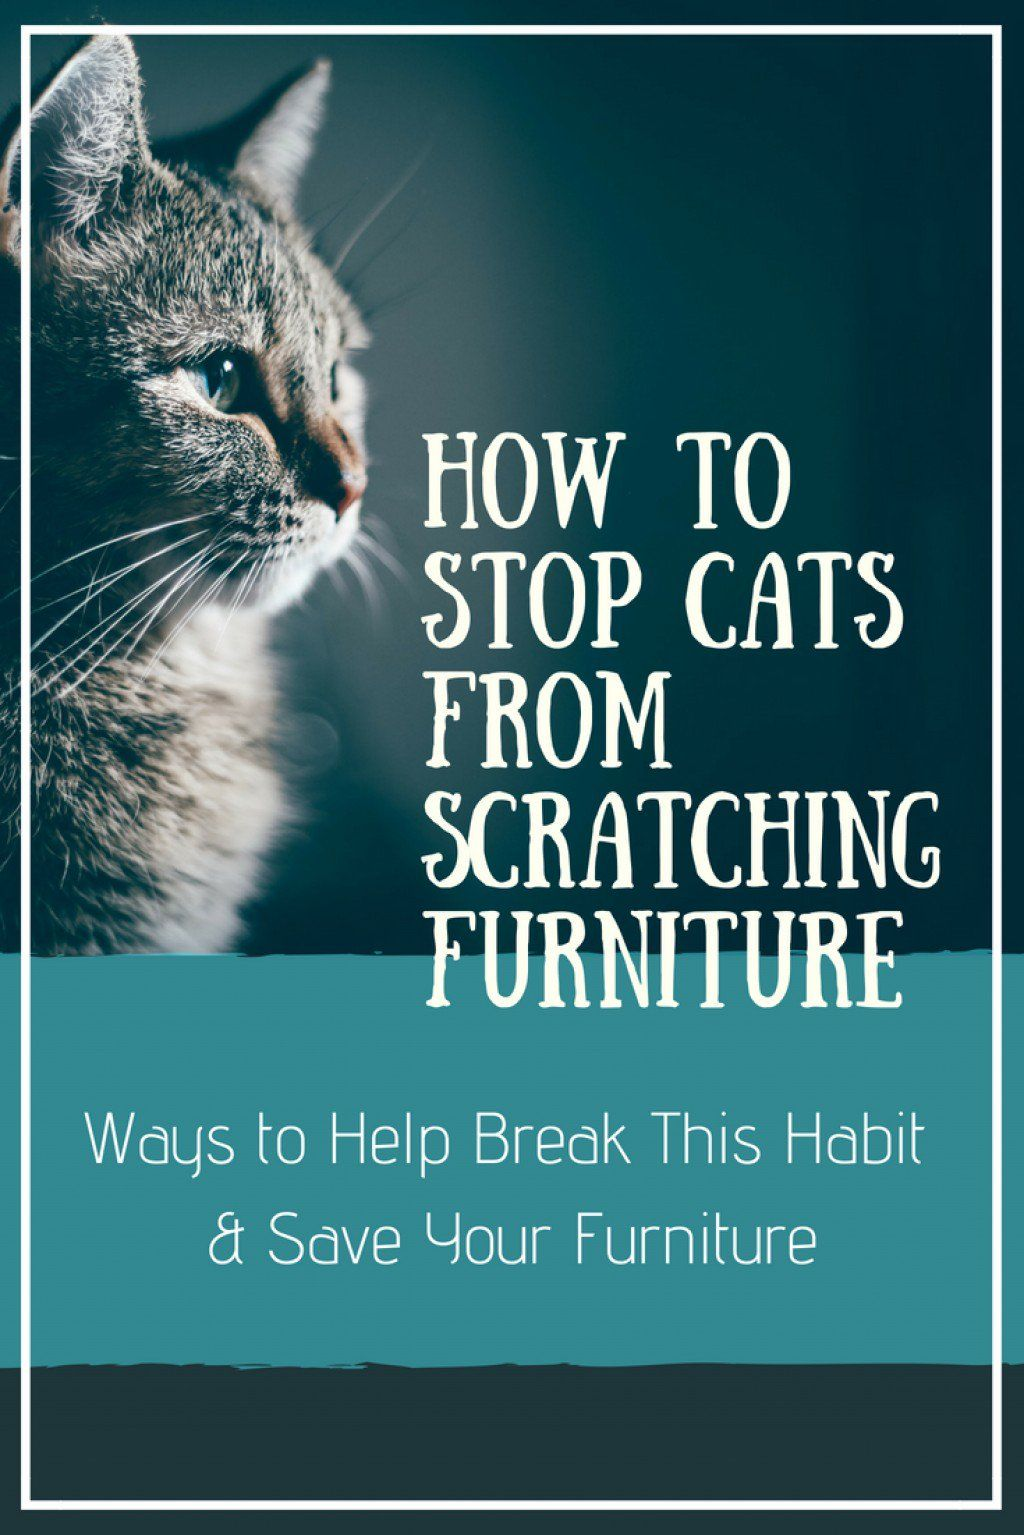 How To Stop Cats From Scratching Furniture Furniture Scratches Cat Scratching Furniture Cat Proof Furniture